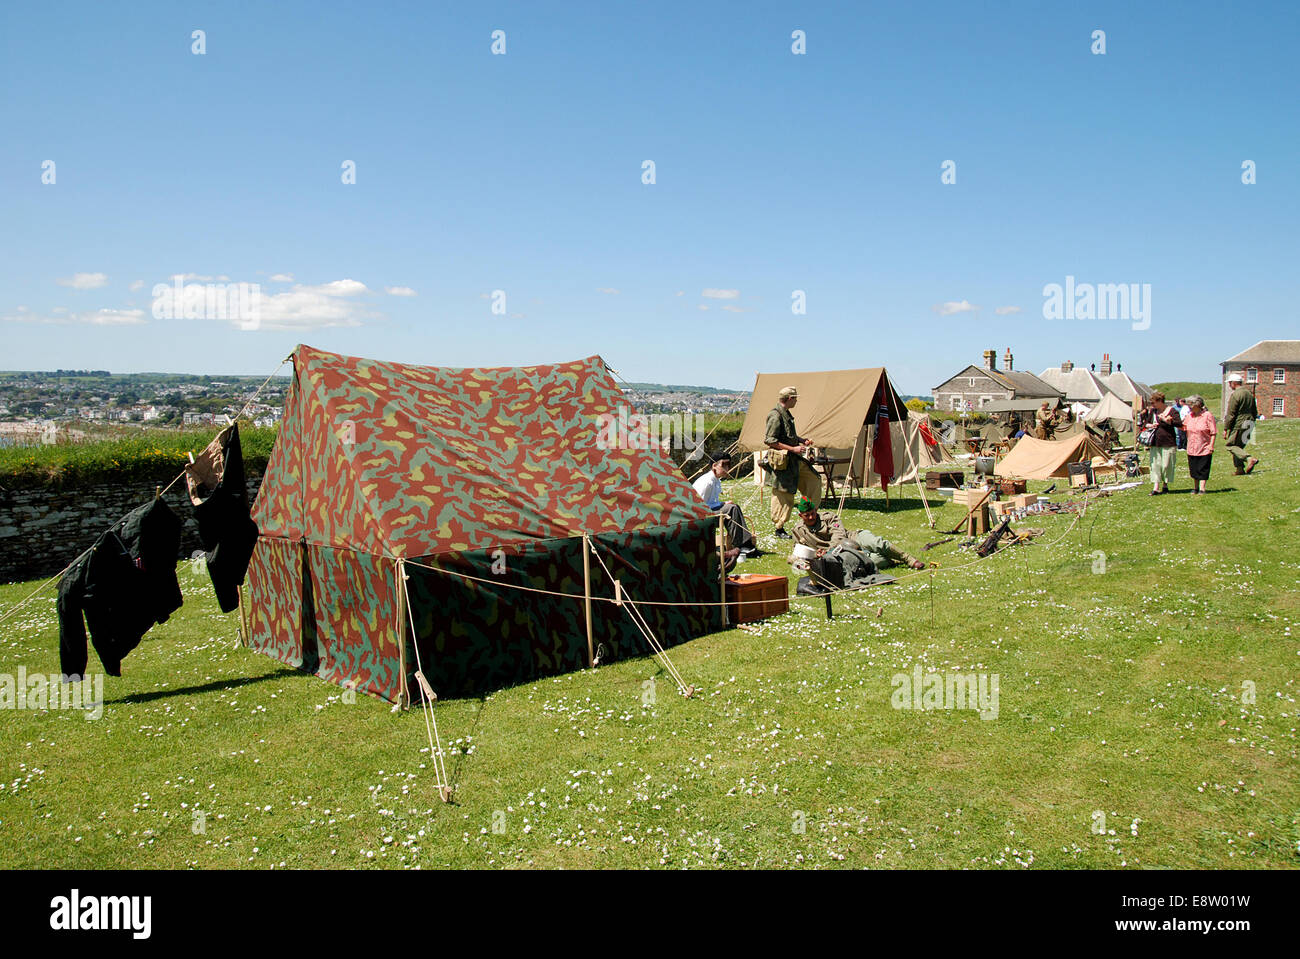 a military camp at a second world war reenactment - Stock Image